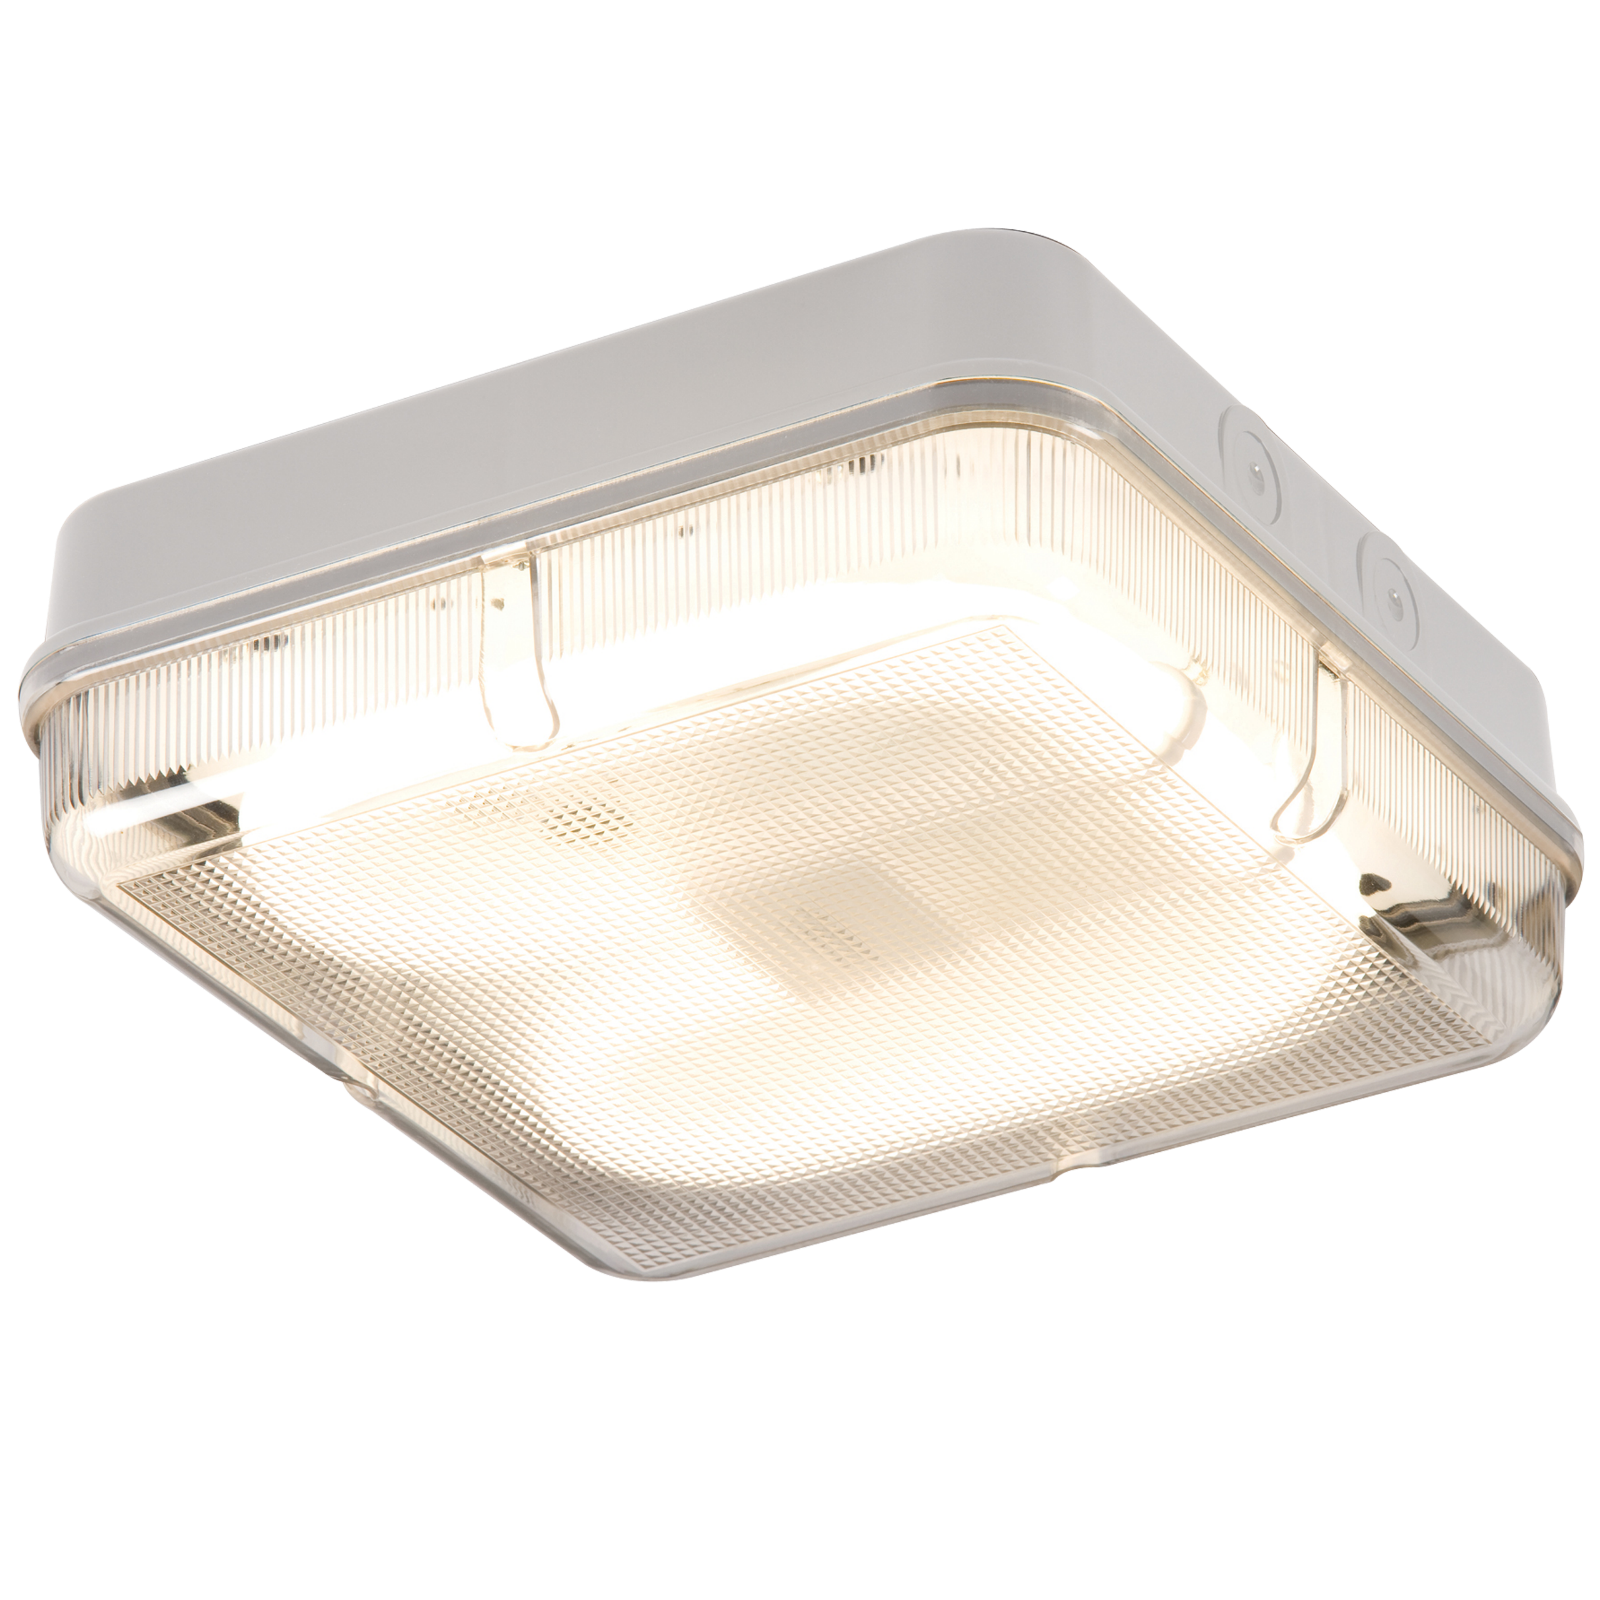 IP65 28W HF Square Bulkhead with Prismatic Diffuser and White Base